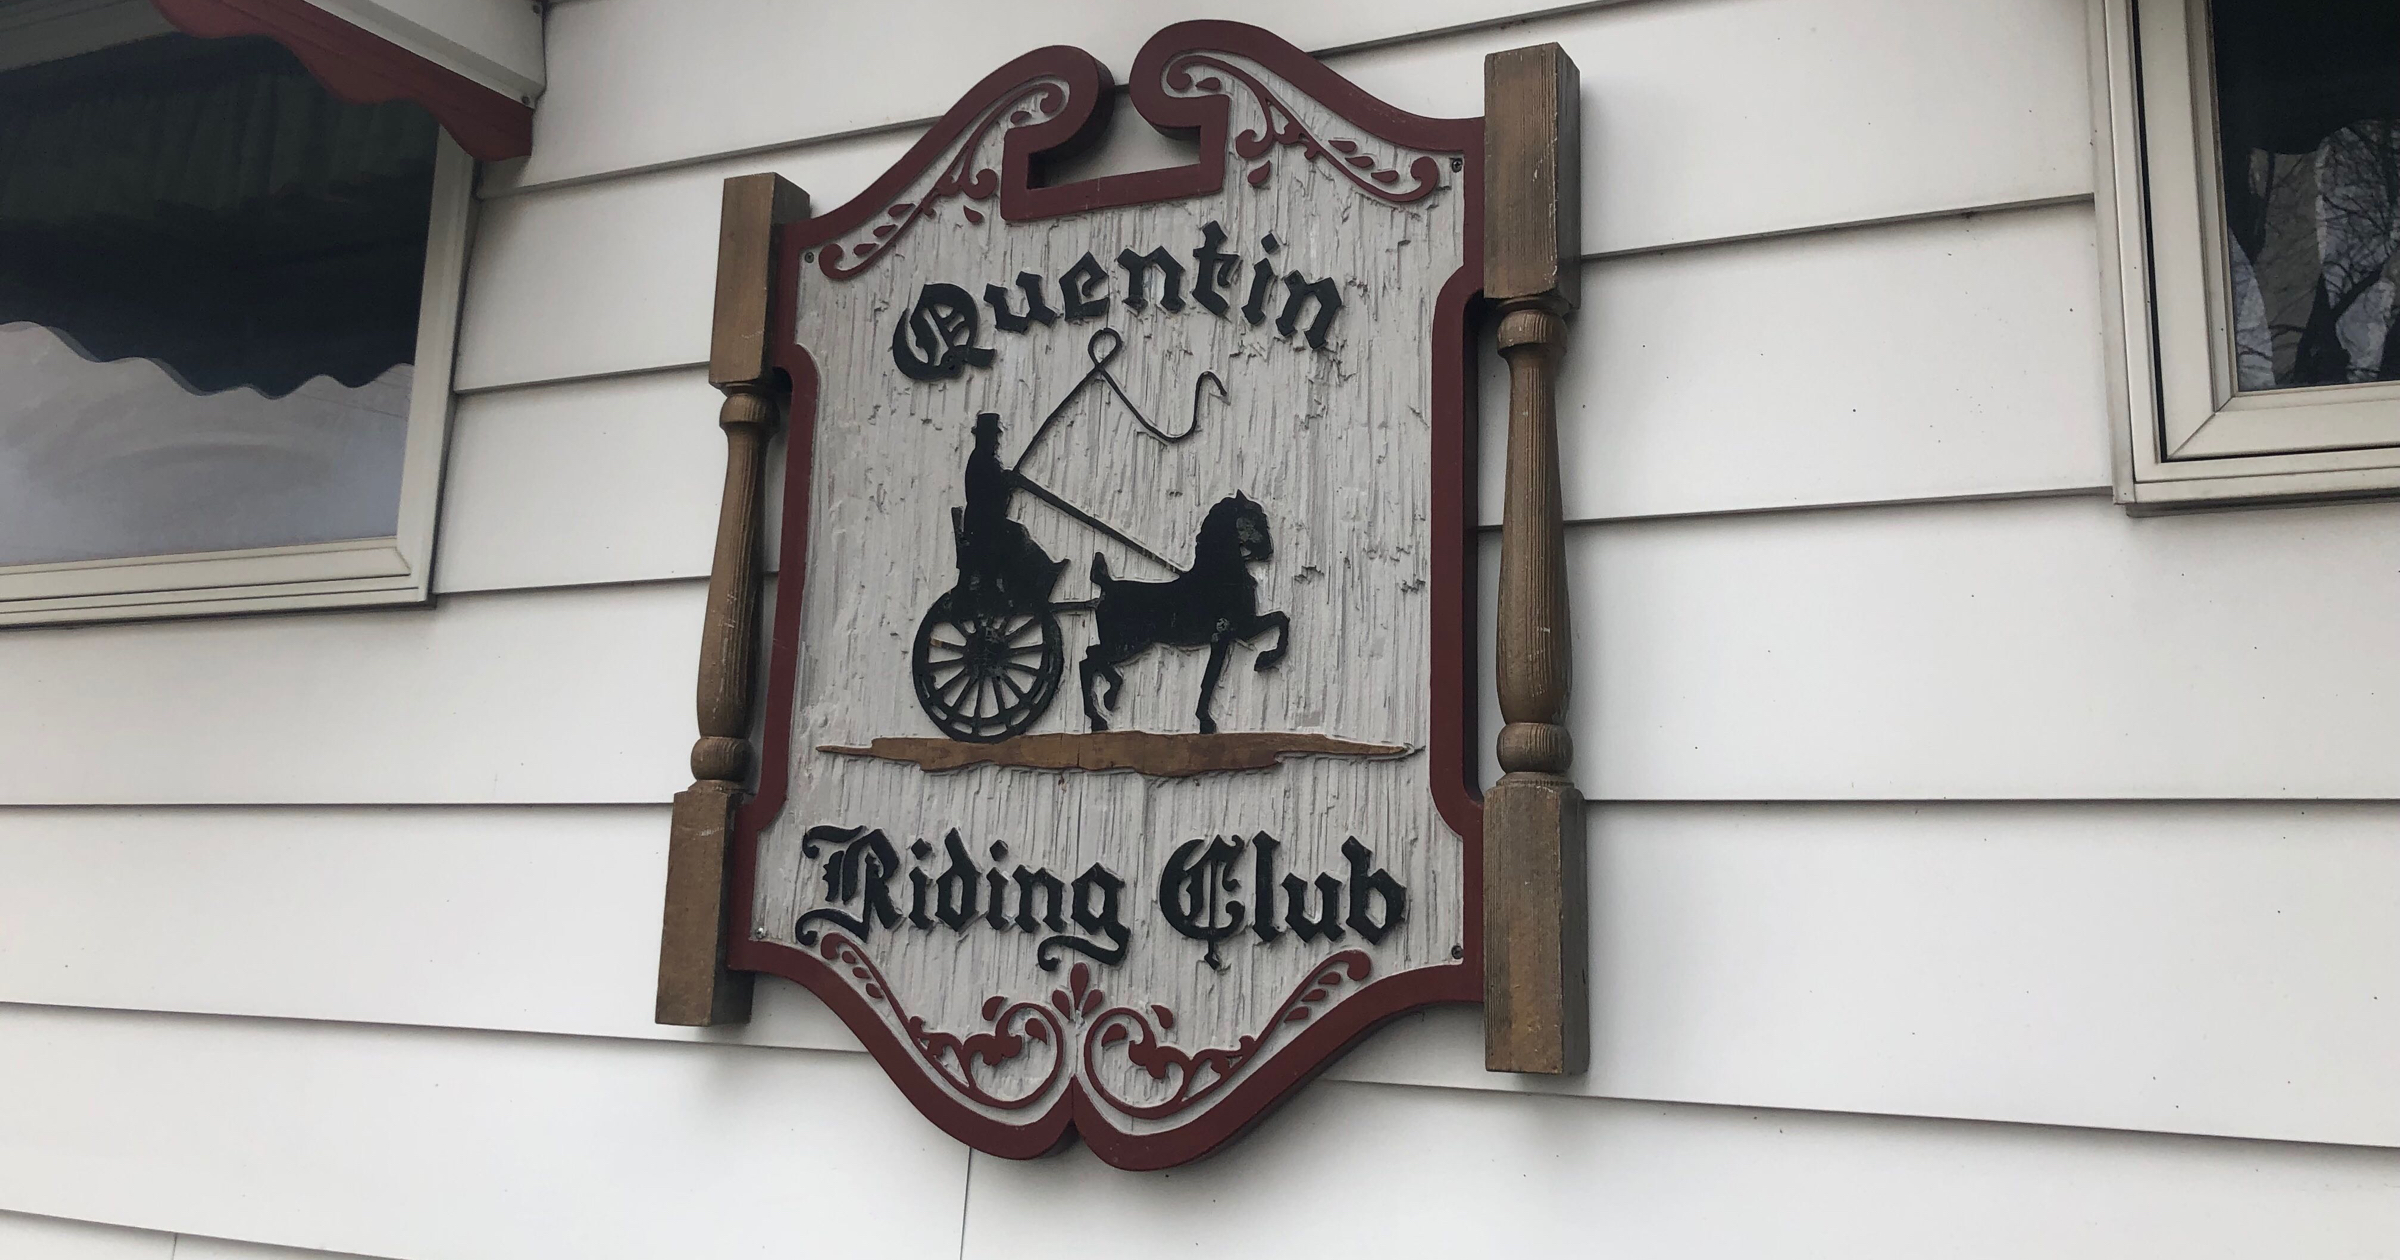 Planned Quentin Riding Club sale is off, members will meet tomorrow